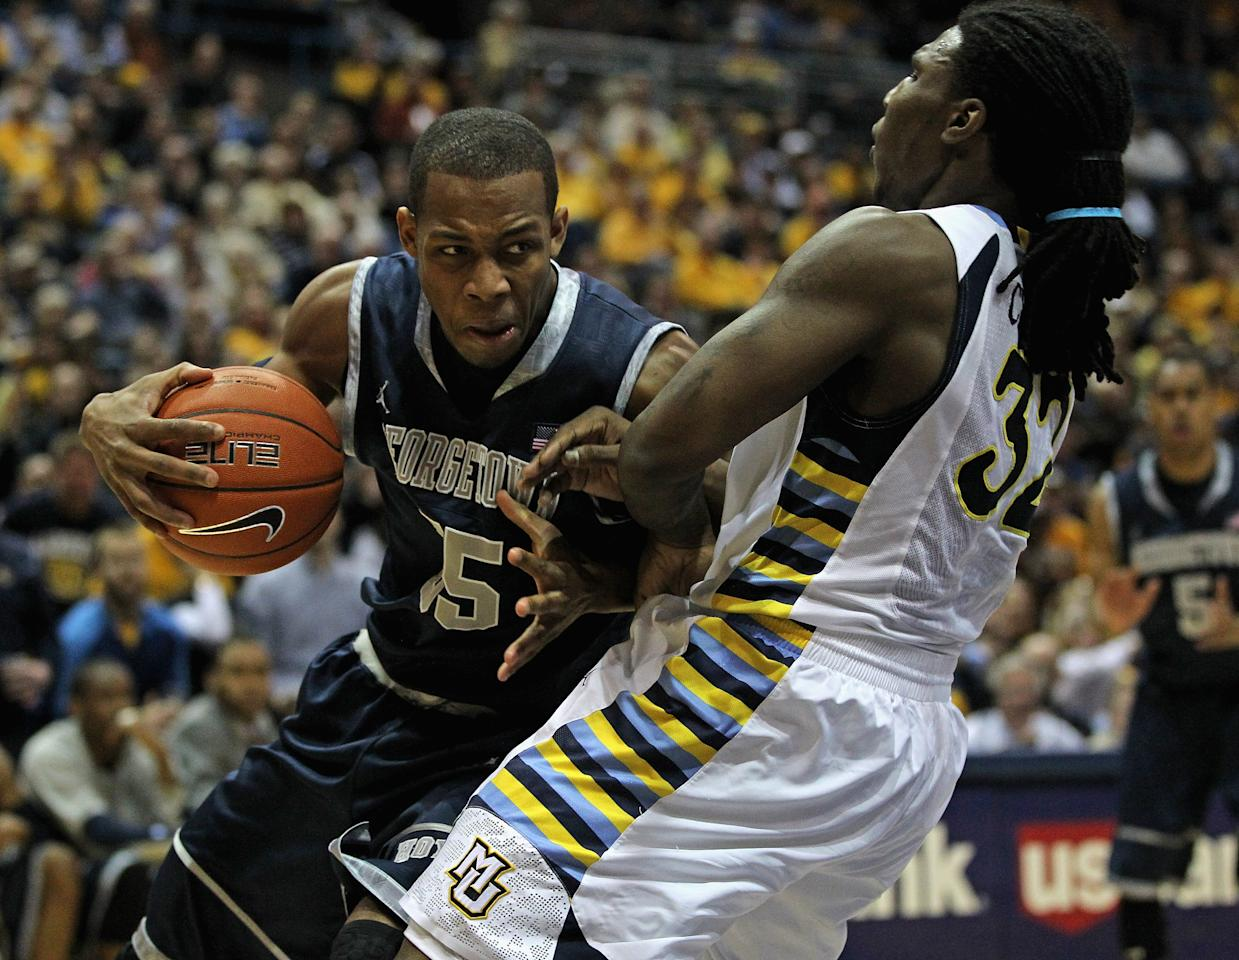 MILWAUKEE, WI - MARCH 03:  Jabril Trawick #55 of the Georgetown Hoyas charges against Jae Crowder #32 of the Marquette Golden Eagles at the Bradley Center on March 3, 2012 in Milwaukee, Wisconsin. Marquette defeated Georgetown 83-69.  (Photo by Jonathan Daniel/Getty Images)